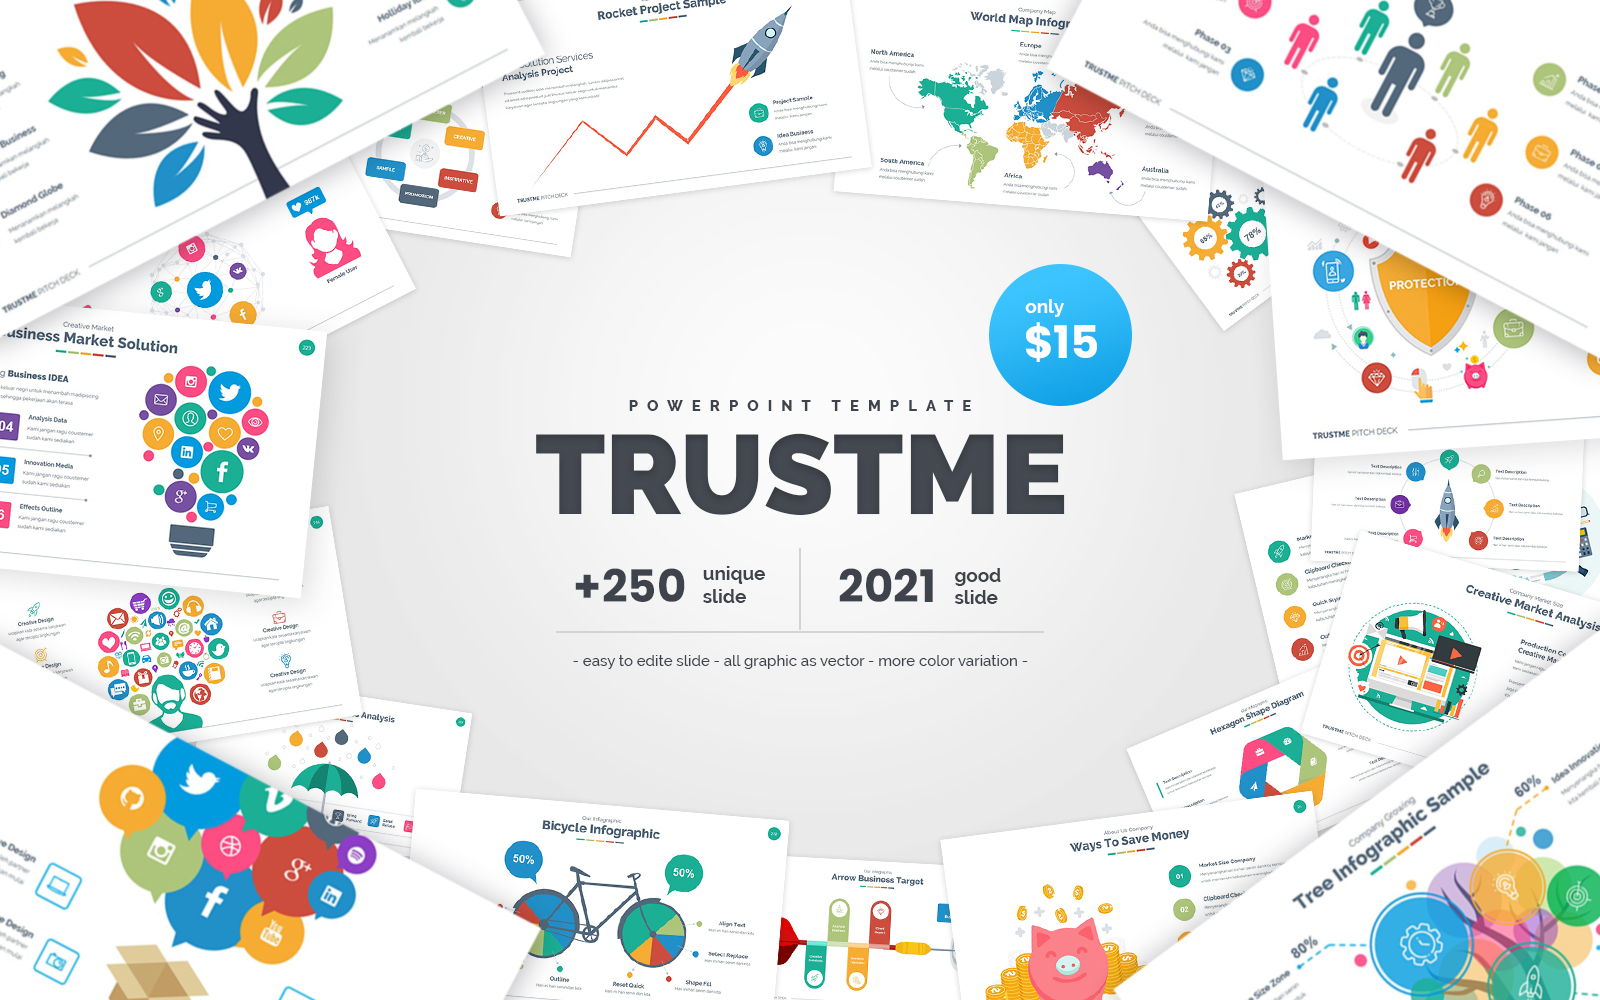 Trustme Powerpoint Template